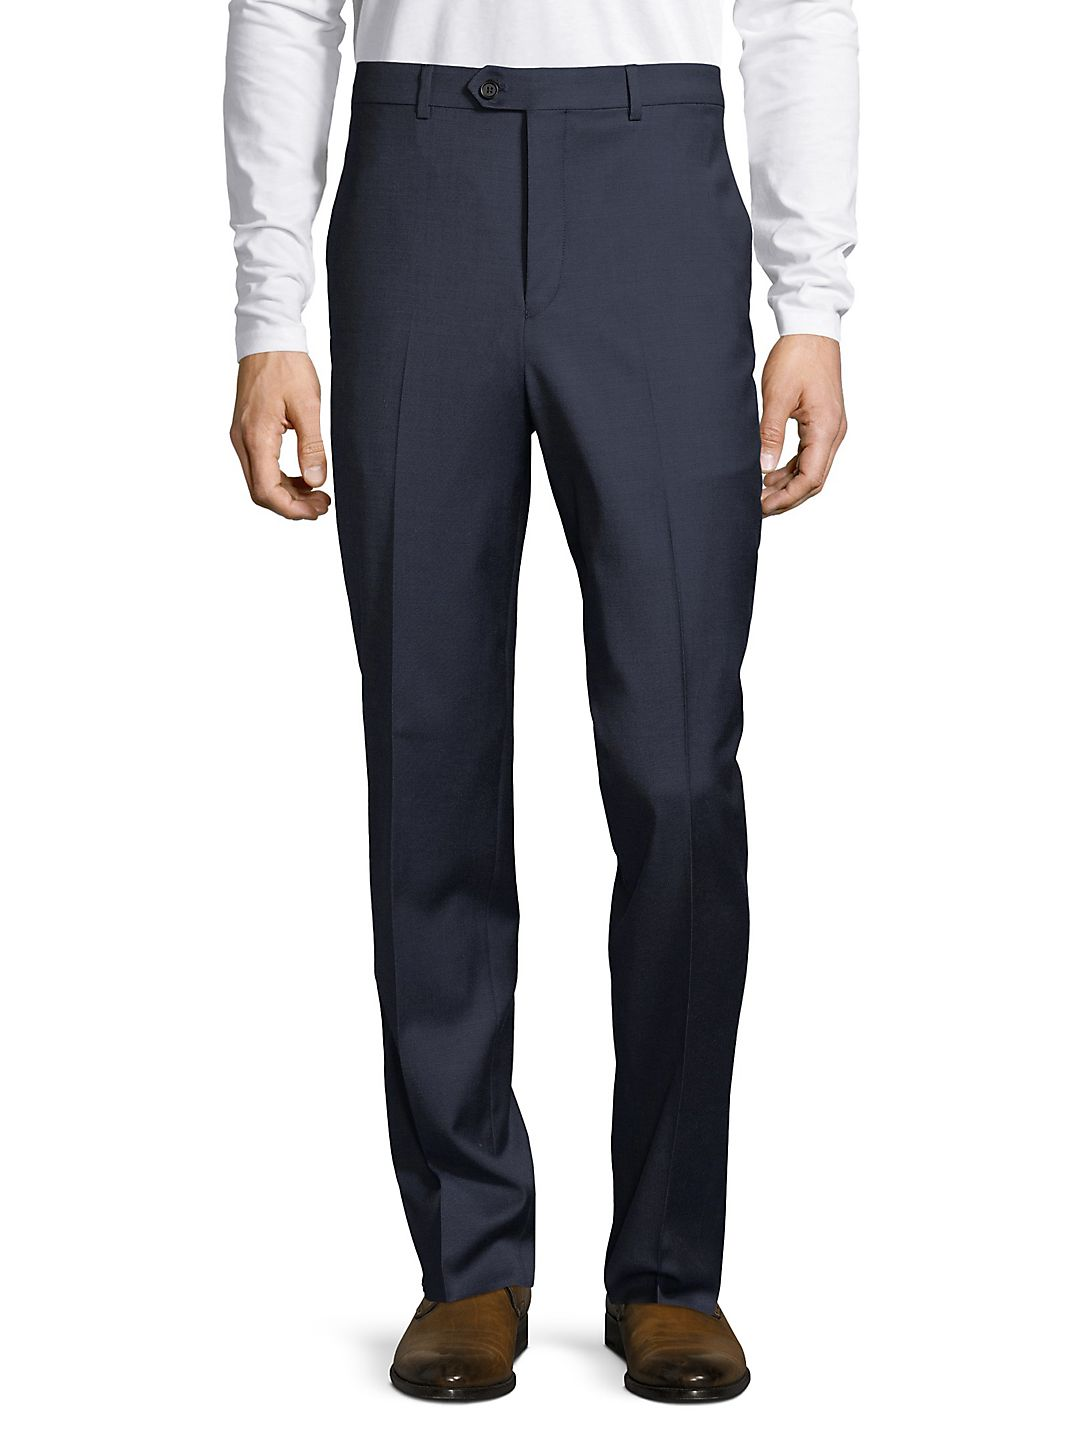 The Mason Fit Stretch Twill Dress Pants